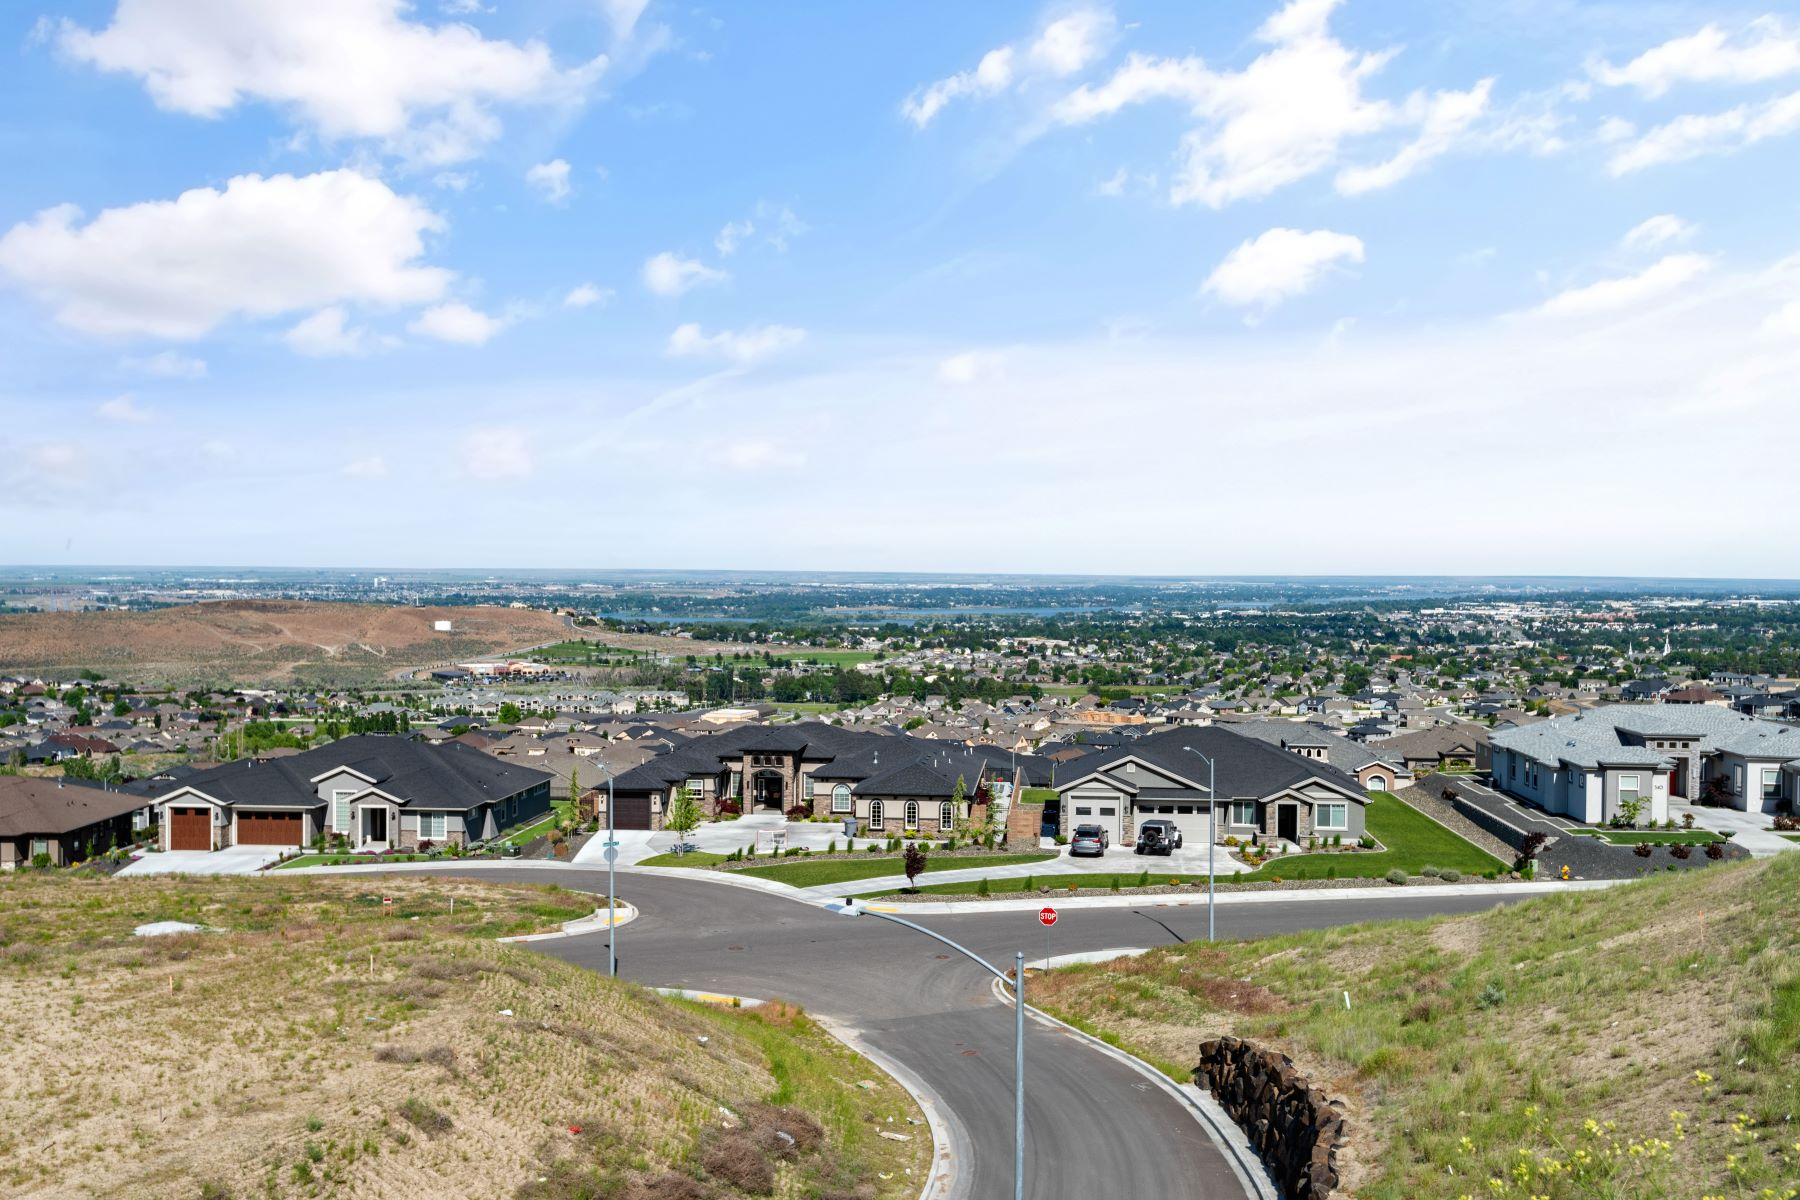 Single Family Homes for Sale at Unobstructed Panoramic View 797 Summit Street Richland, Washington 99352 United States